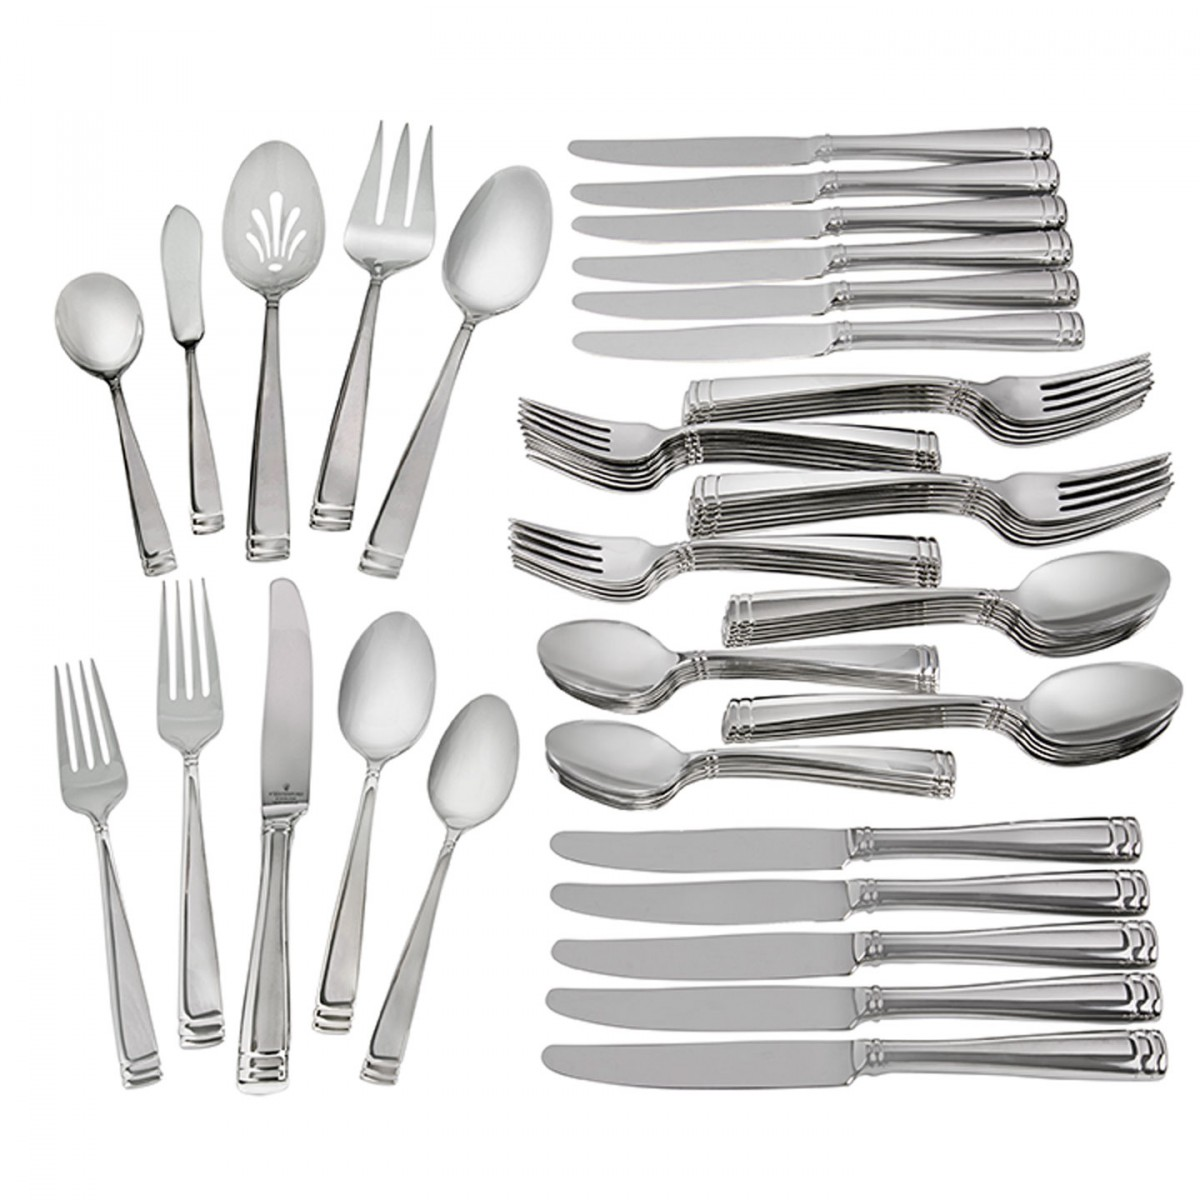 Eisenhardt-Mckillip Waterford Conover Stainless 65-Piece Flatware Set